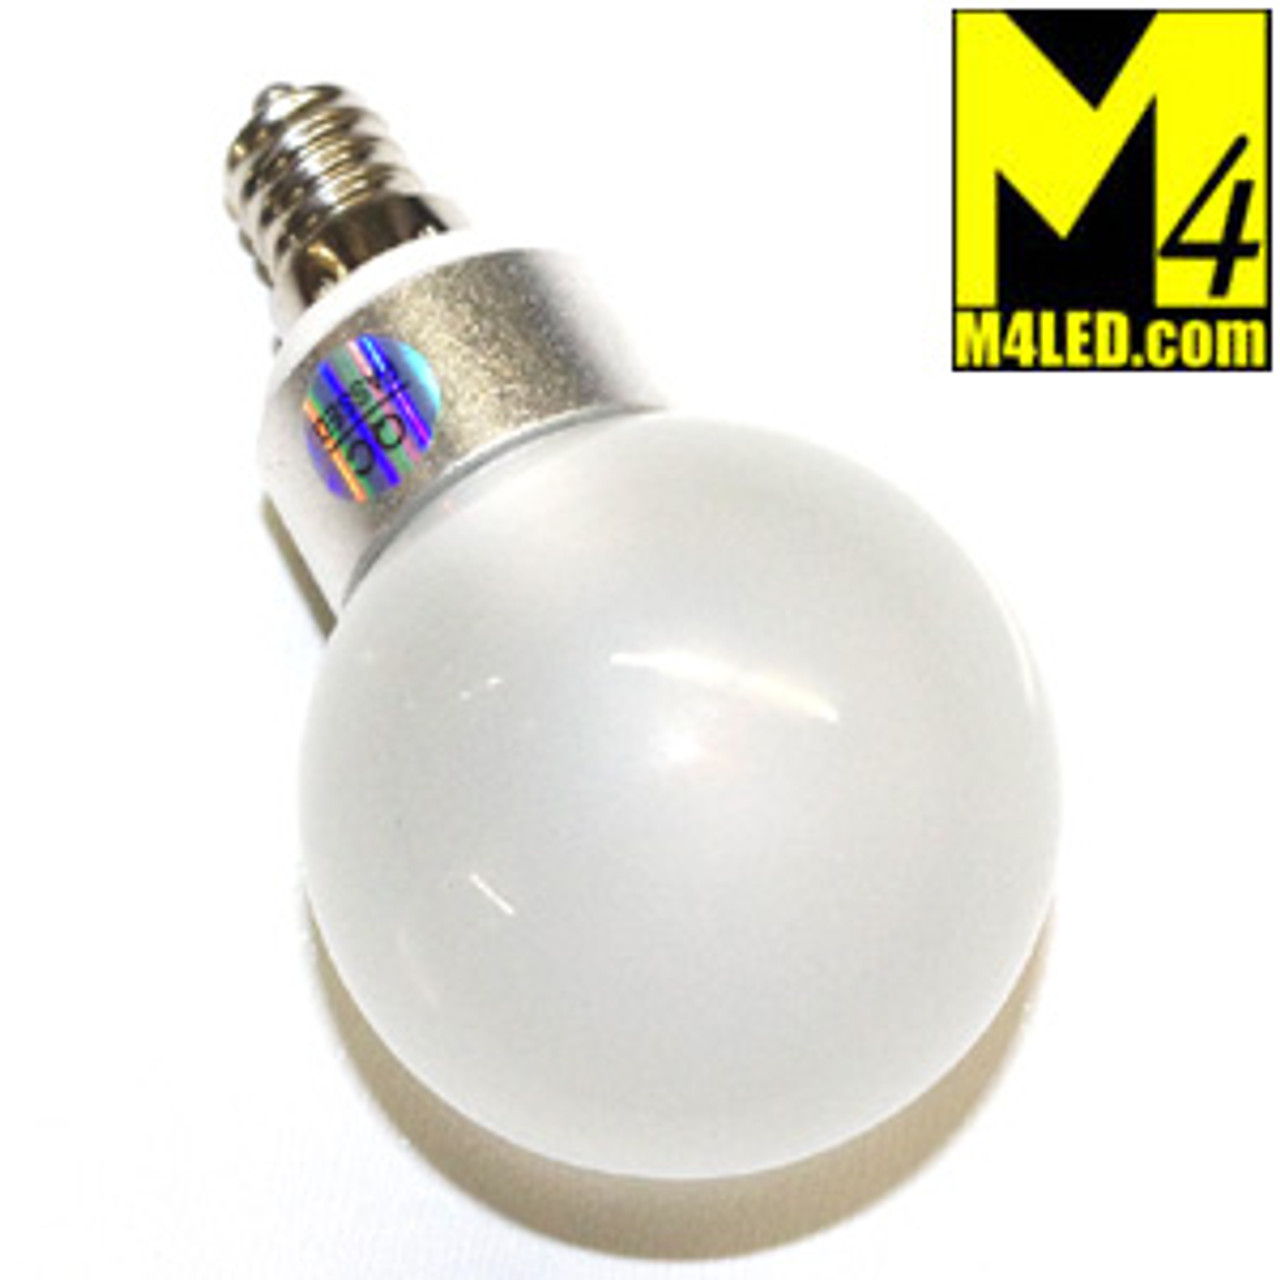 Home or RV LV-CL-3WA2-CW 120v Cool White Screw in Vanity Globe with Mini E12 Base